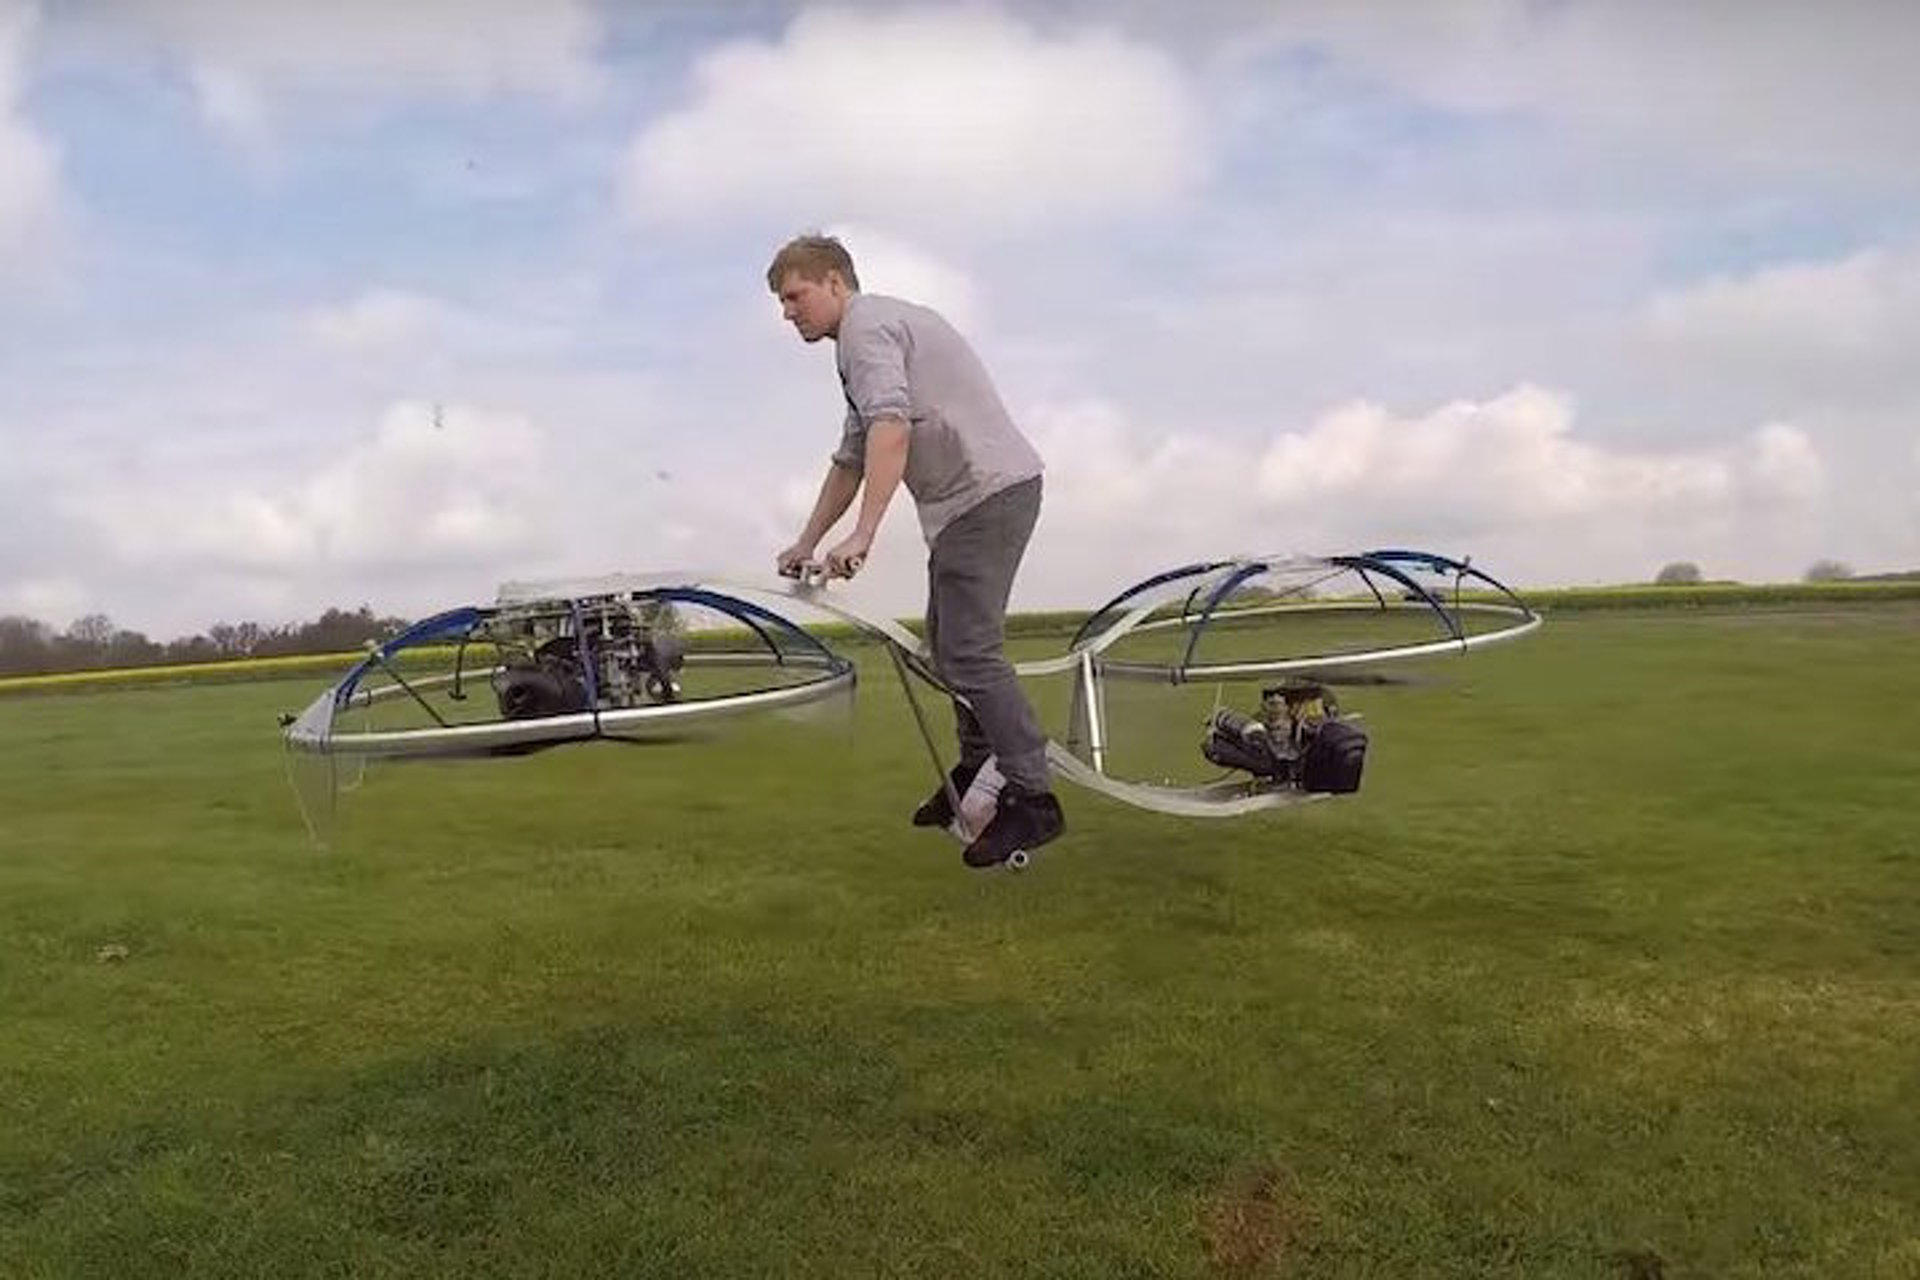 This Homemade Hoverbike Looks Like the Most Fun Way to Get Injured